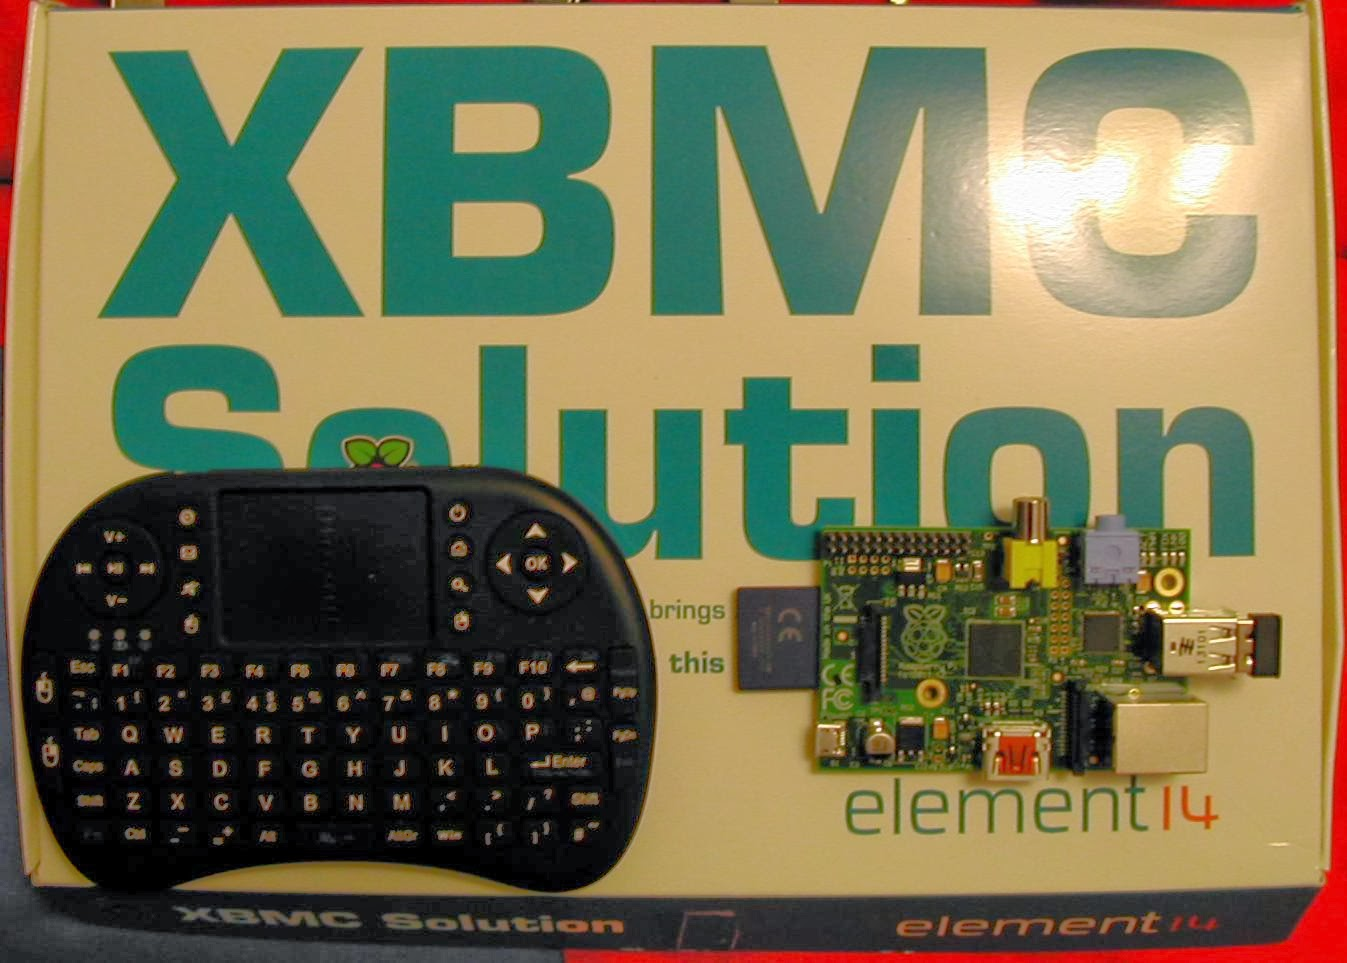 XBMC Bundle for Raspberry Pi Parts cropped DSCN6501 765113 30hbxb hw wiring diagram wiring a non computer 700r4 \u2022 45 63 74 91  at mifinder.co